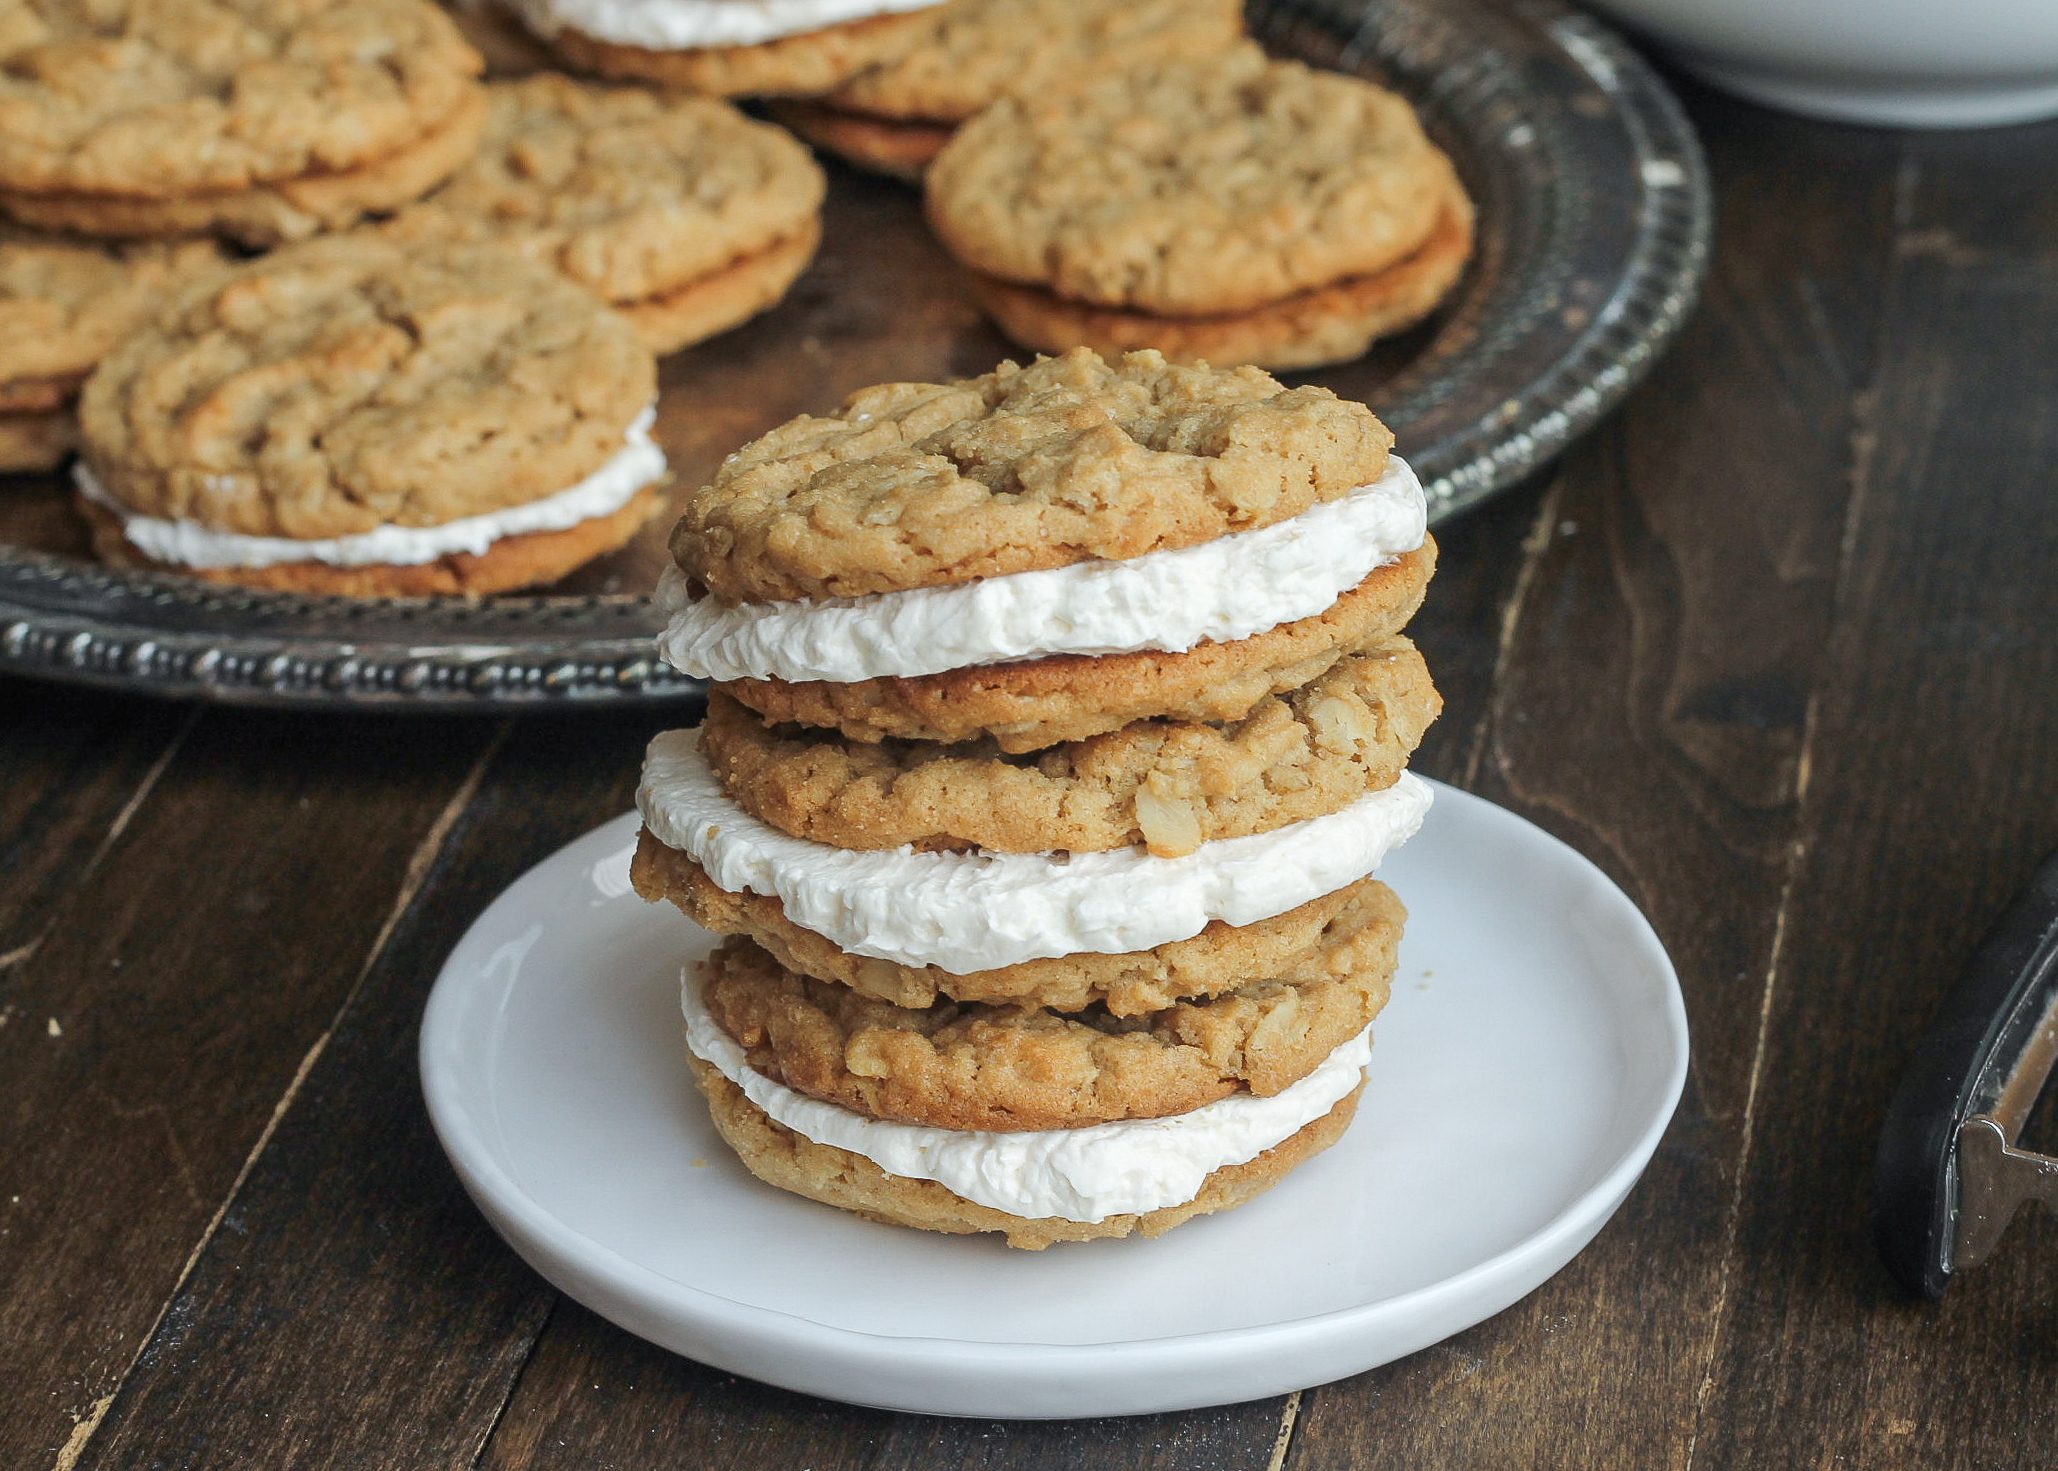 These Peanut Butter Oatmeal Sandwich Cookies with ...